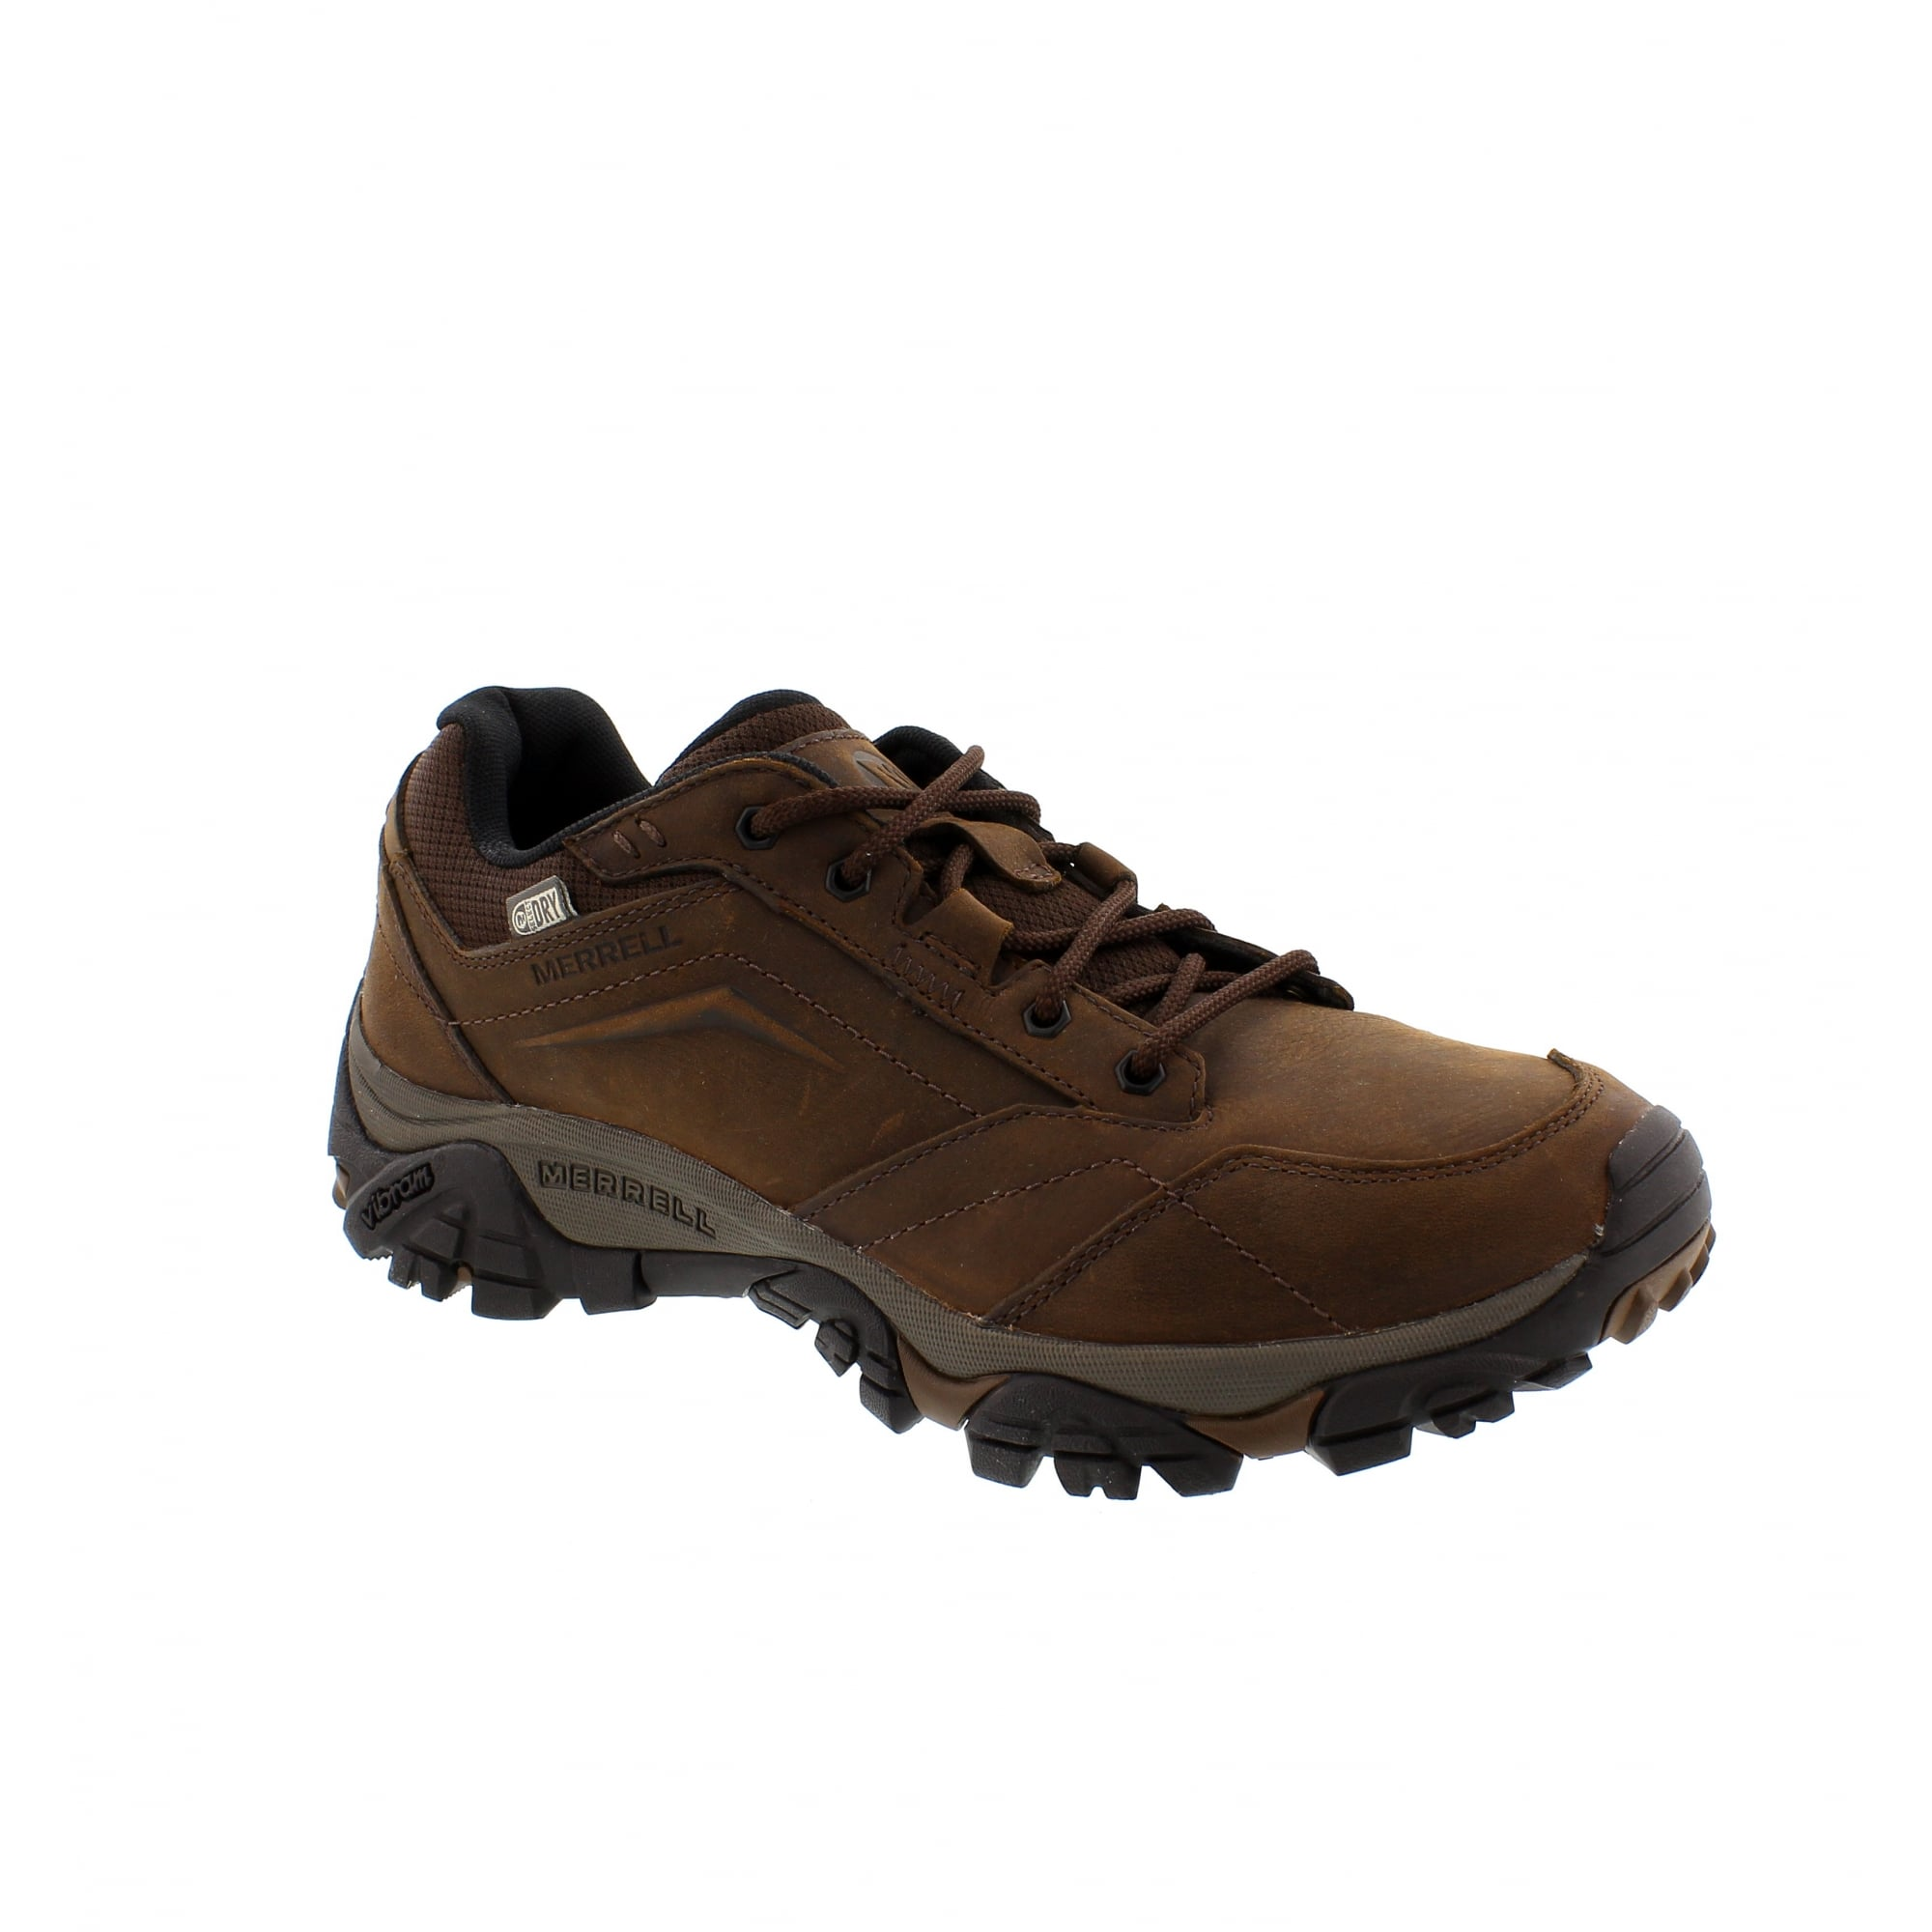 76f7a82763b29 Merrell Moab Adventure Lace Waterproof | J91825 - Mens from Rogerson ...